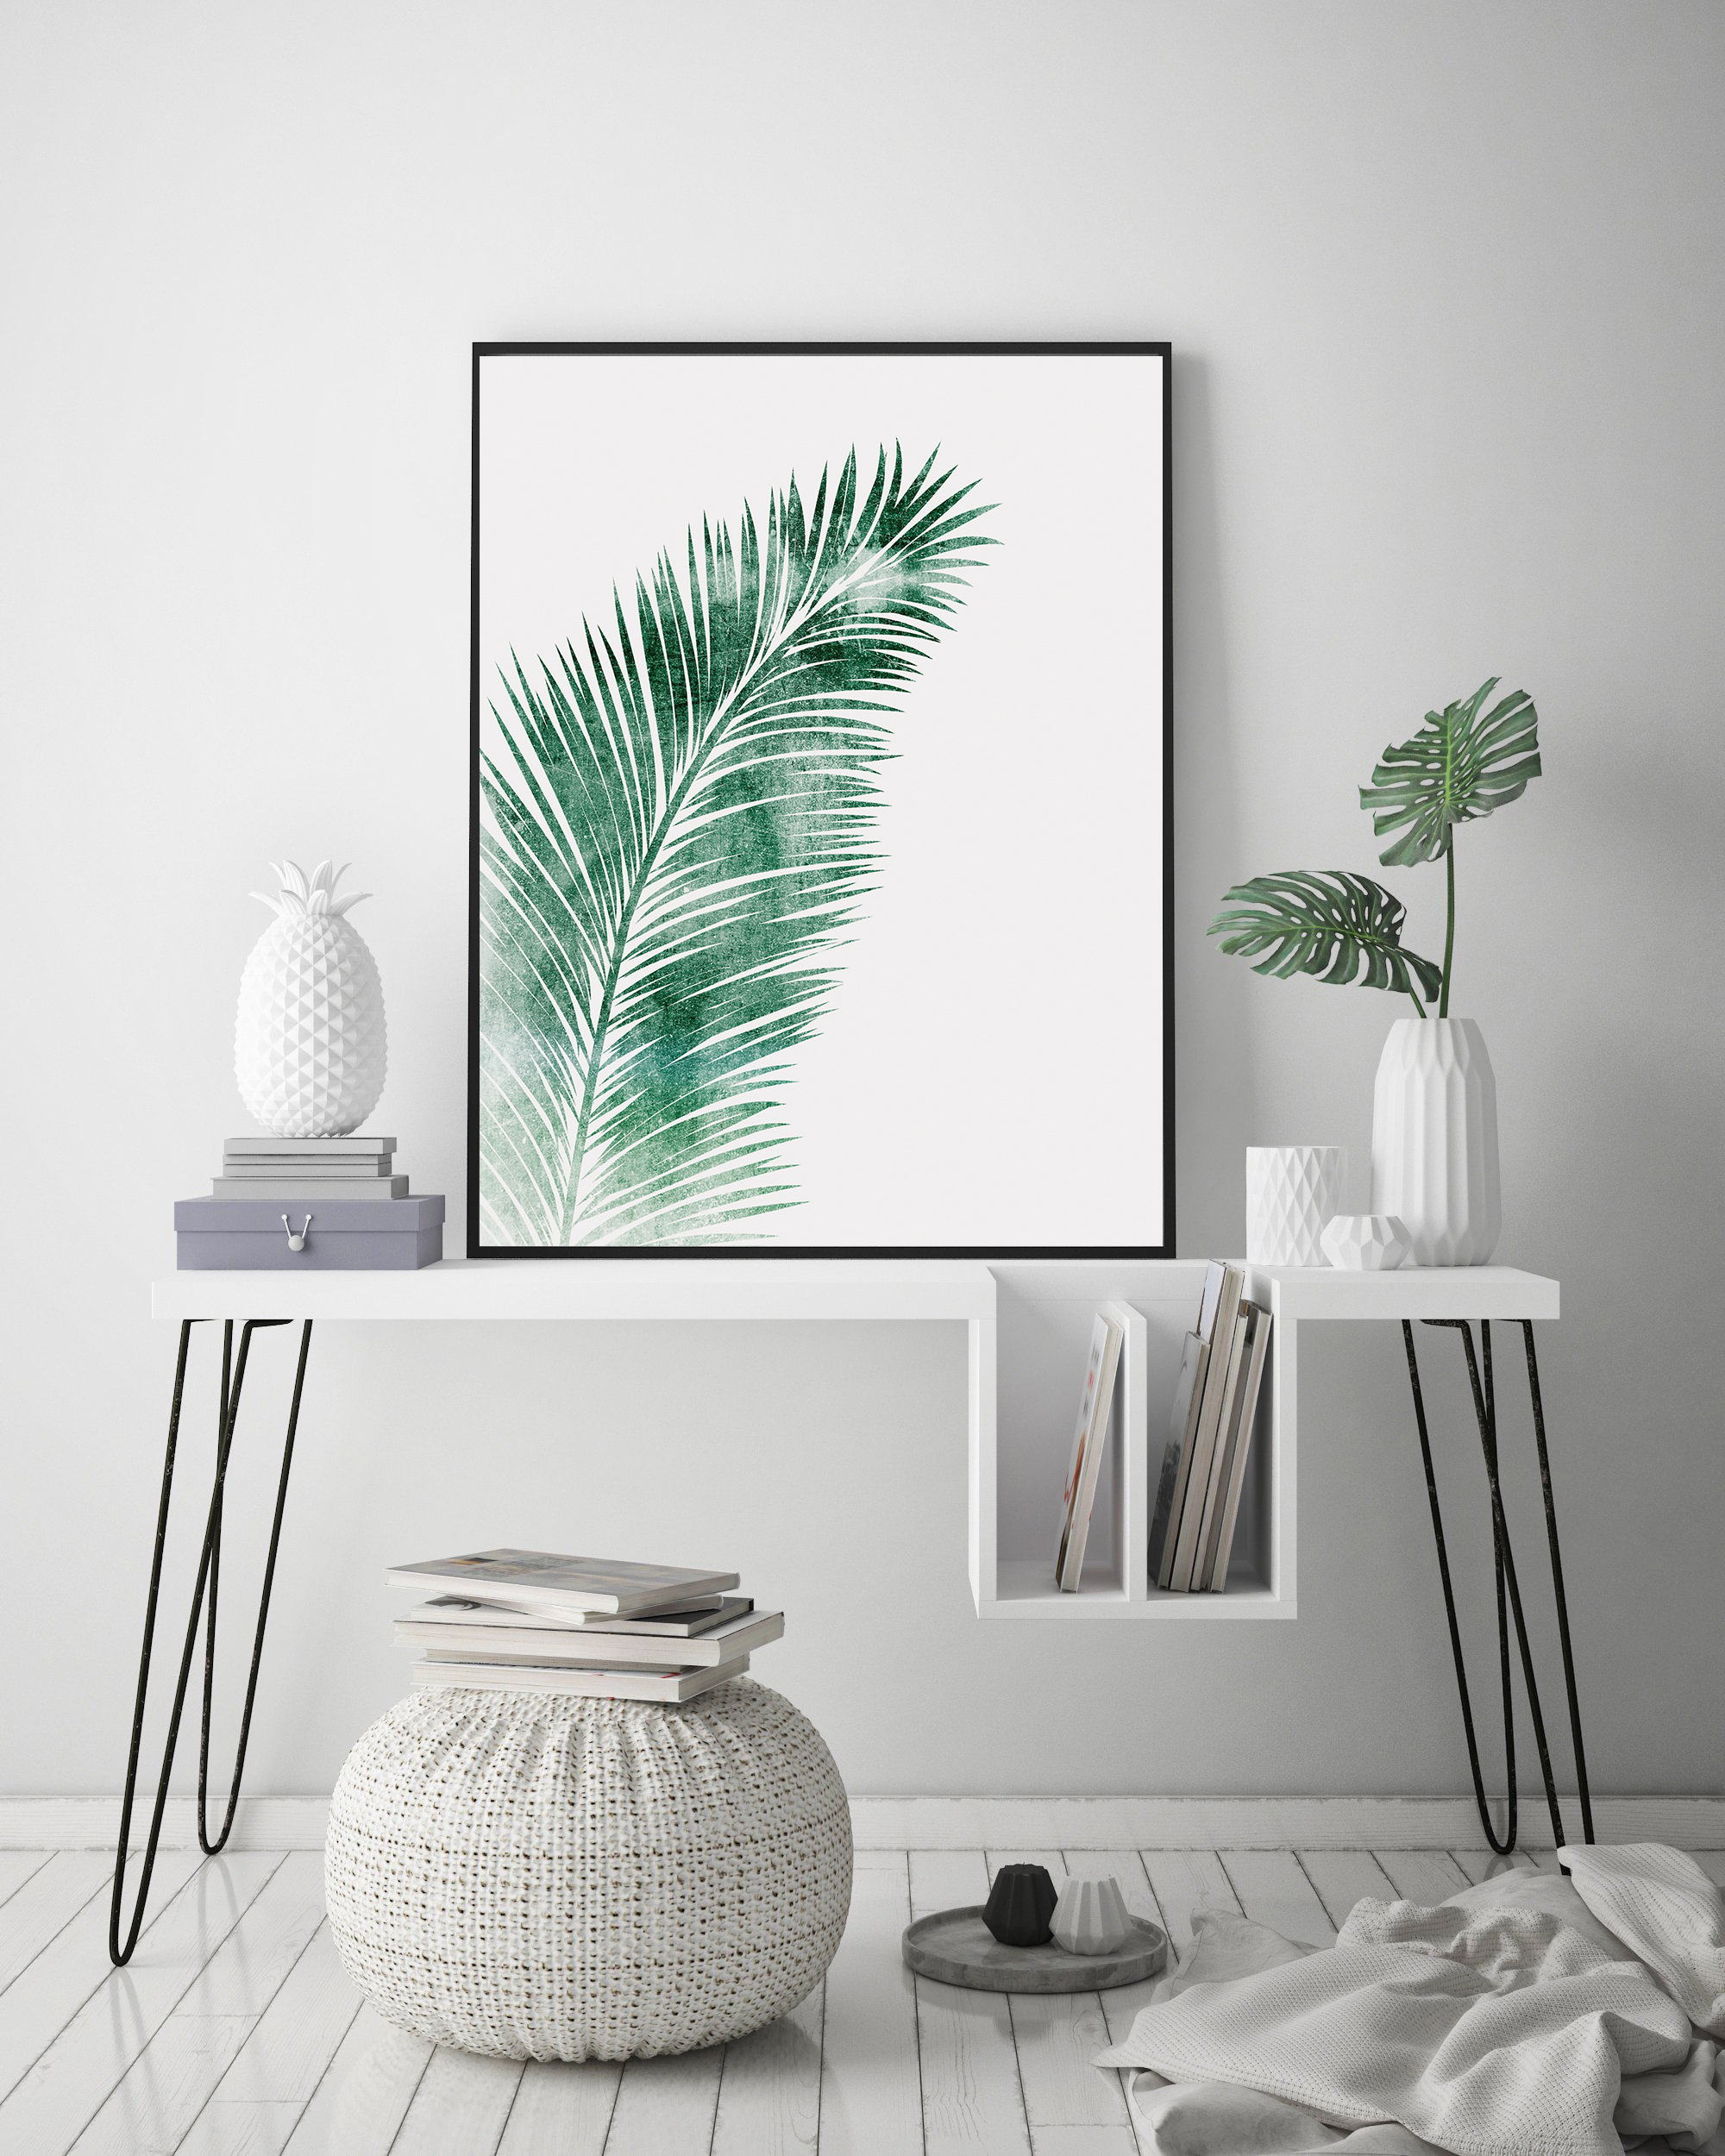 Green Palm Leaf Wall Art, Tropical Leaf for Living Room example image 2